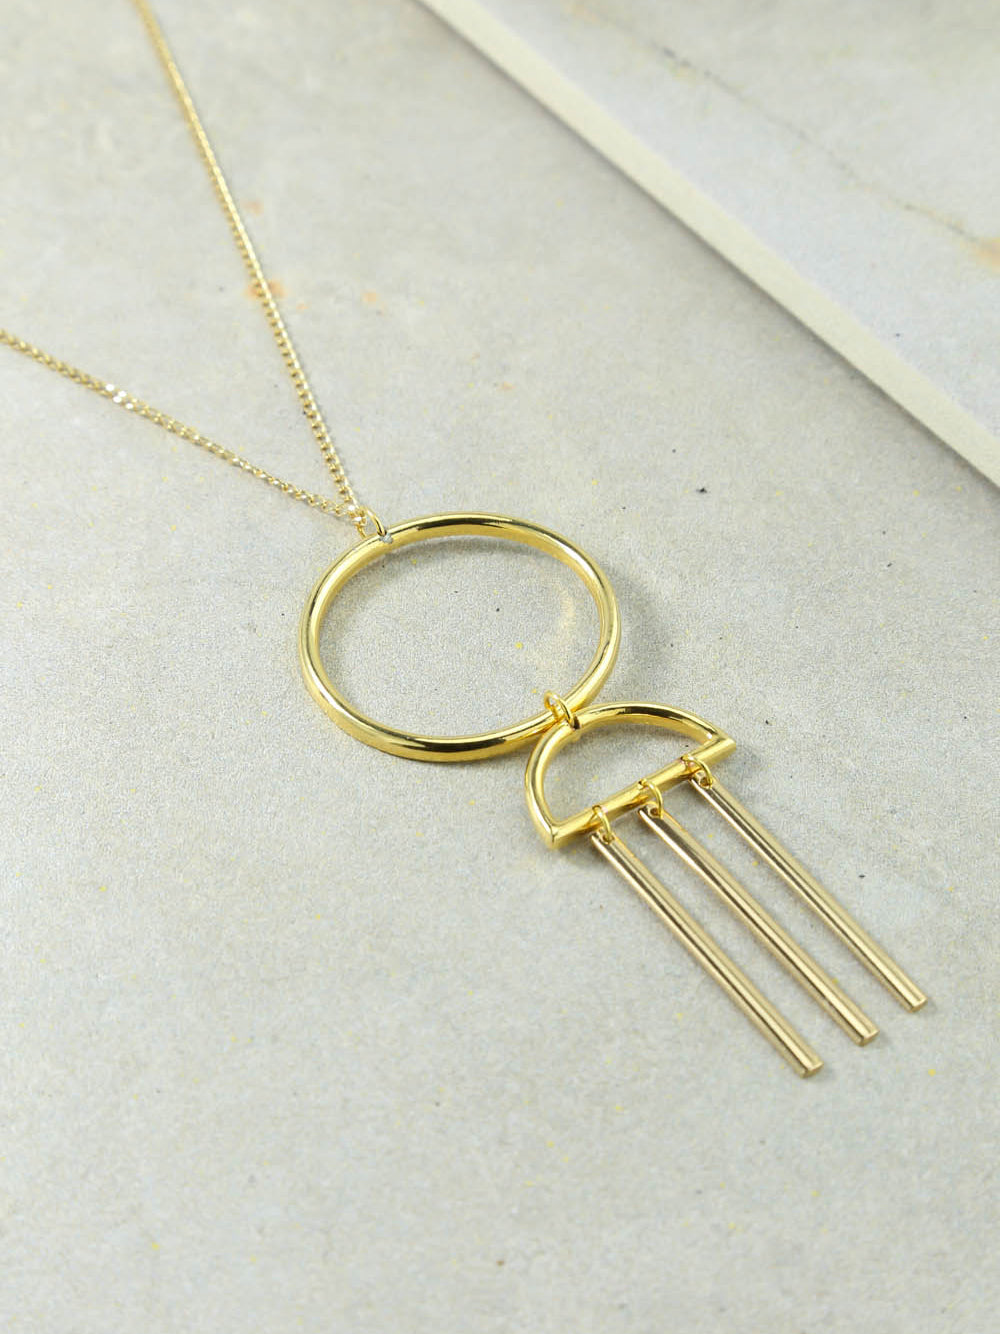 The Uproar Necklace